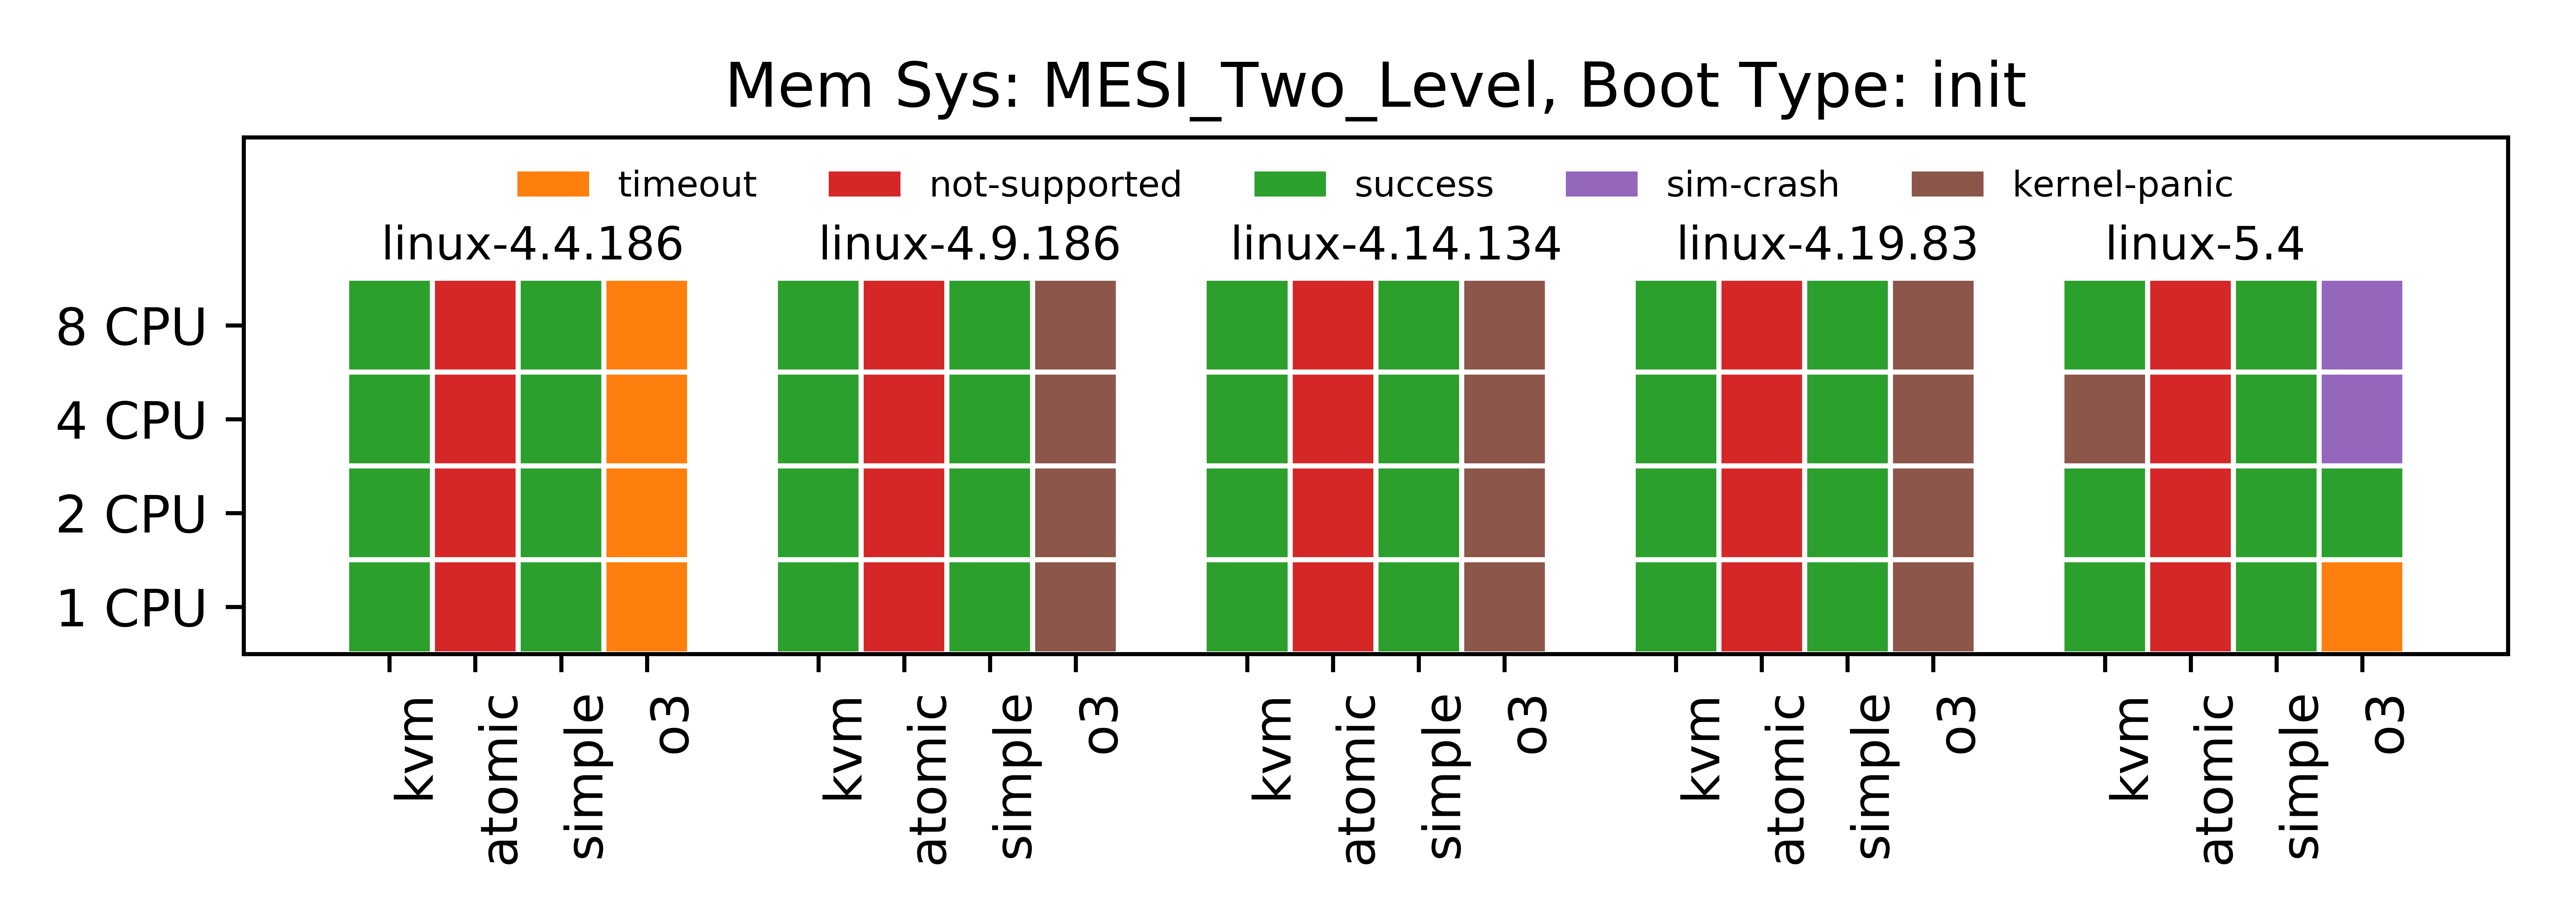 [Boot Tests Status with MESI_Two_Level Memory and init Boot